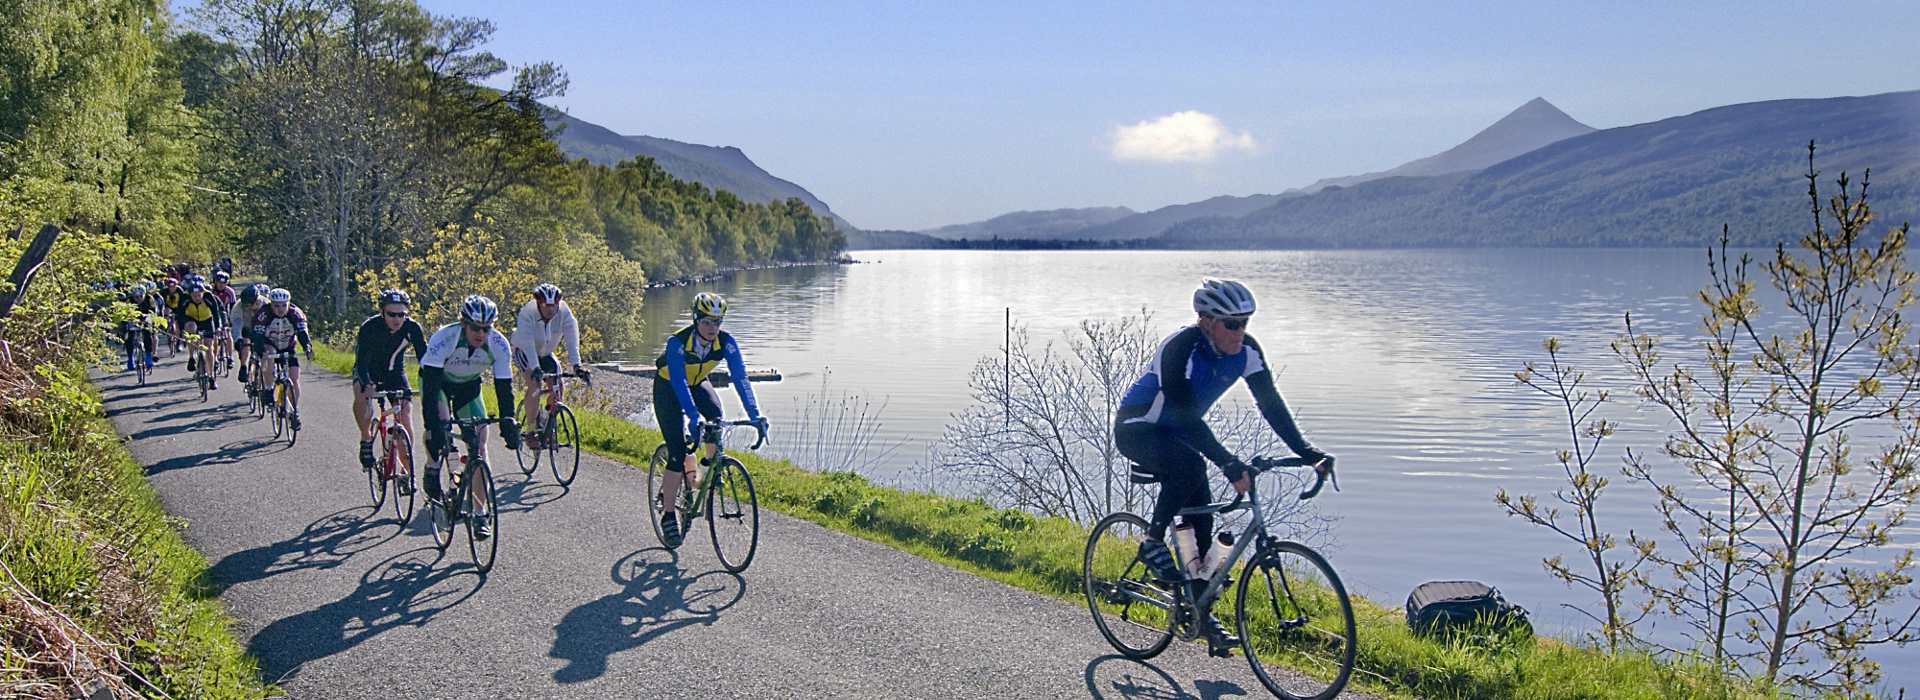 Highland Perthshire cycling and mountain biking